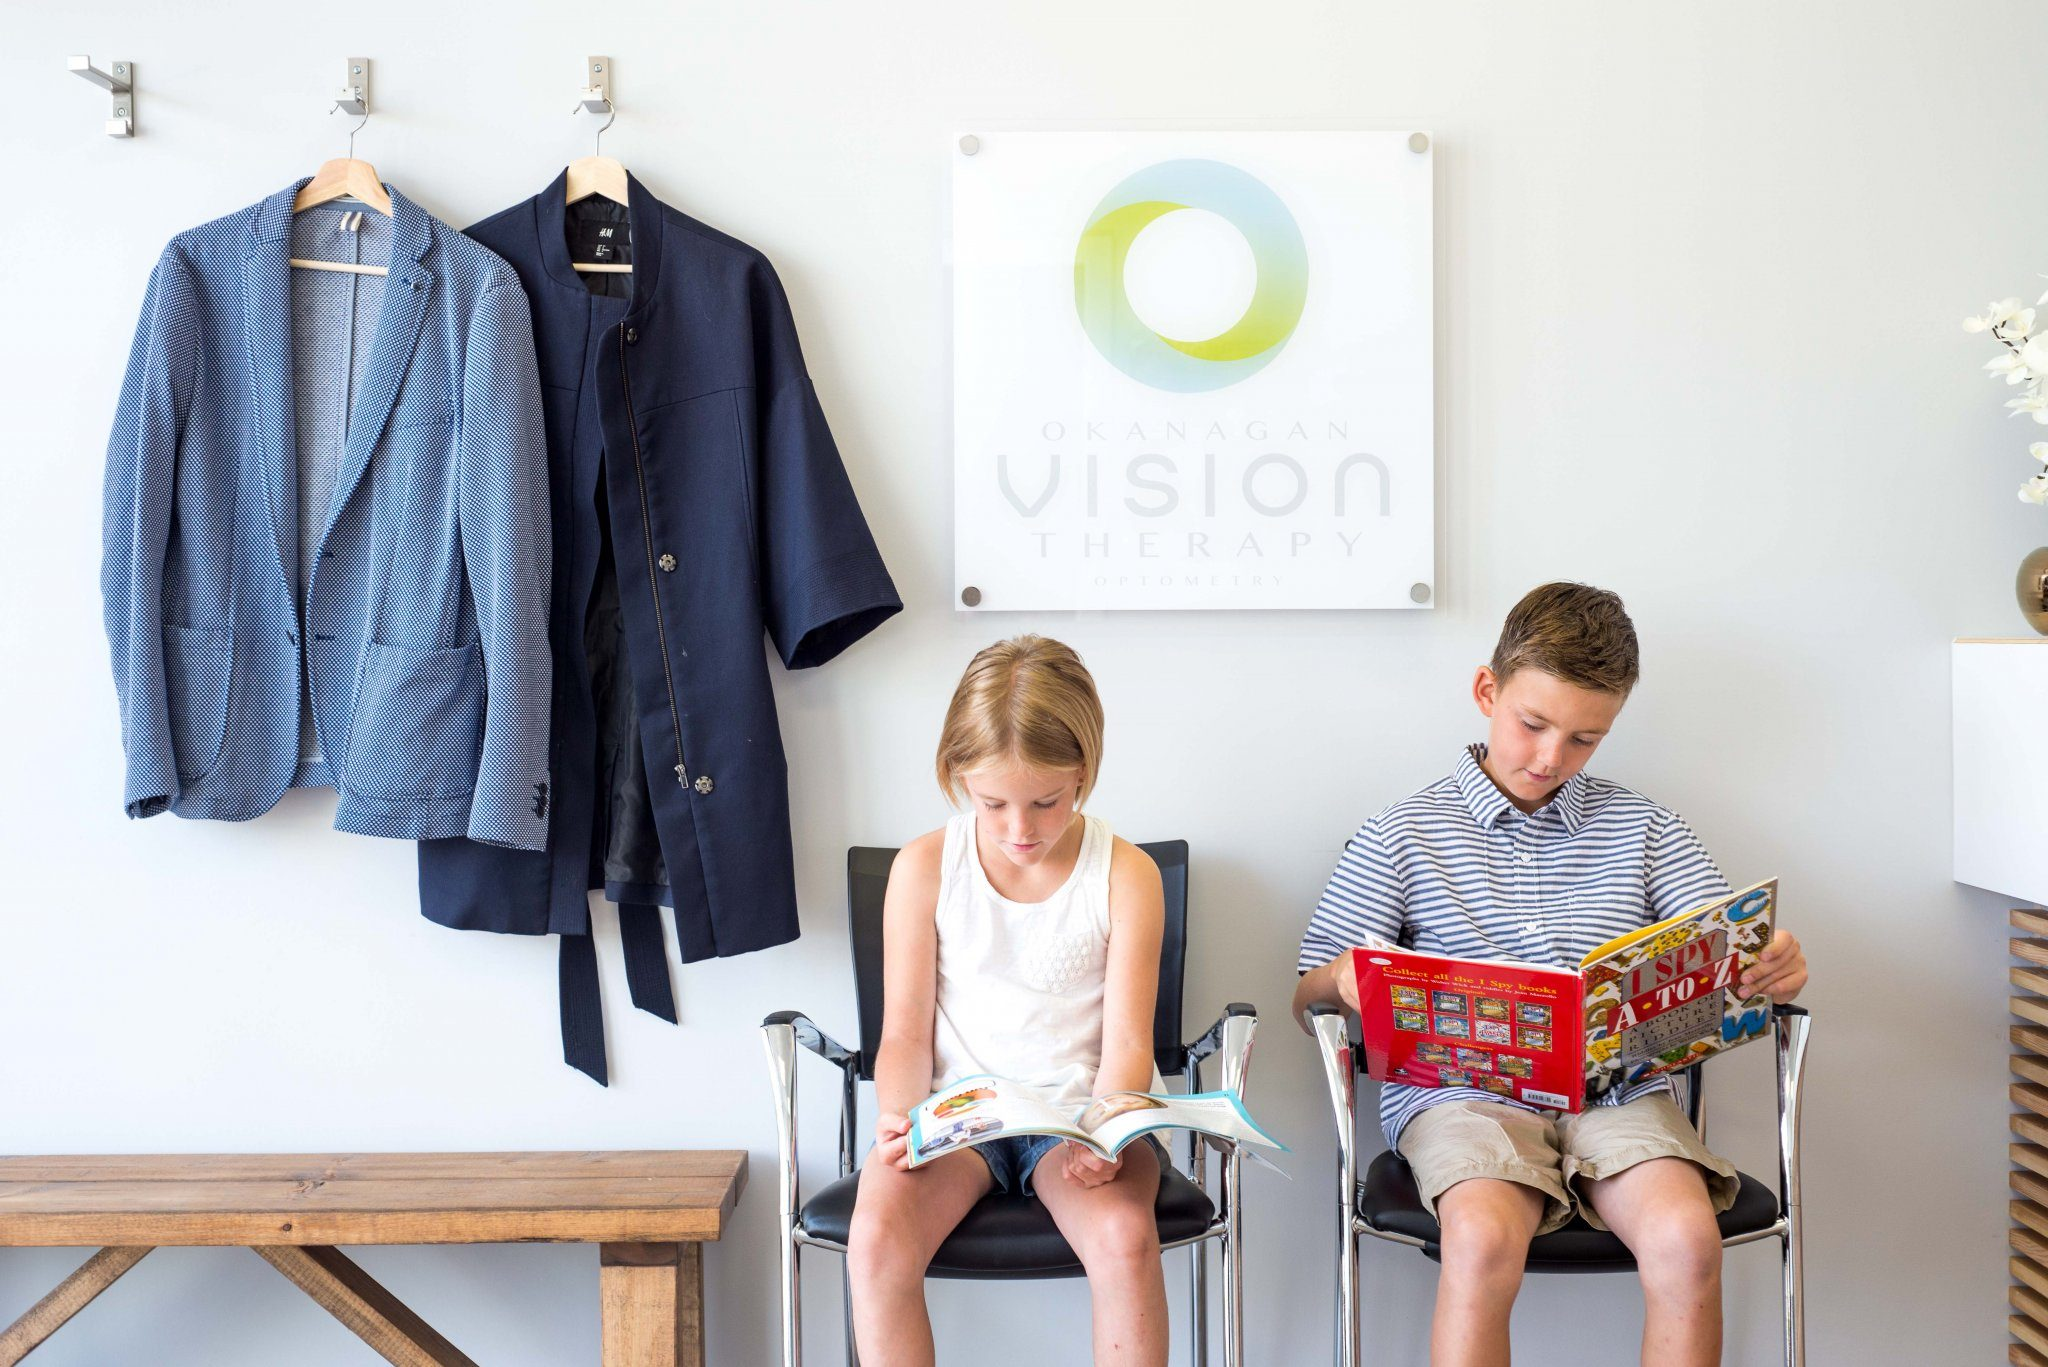 Okanagan Vision Therapy Optometry